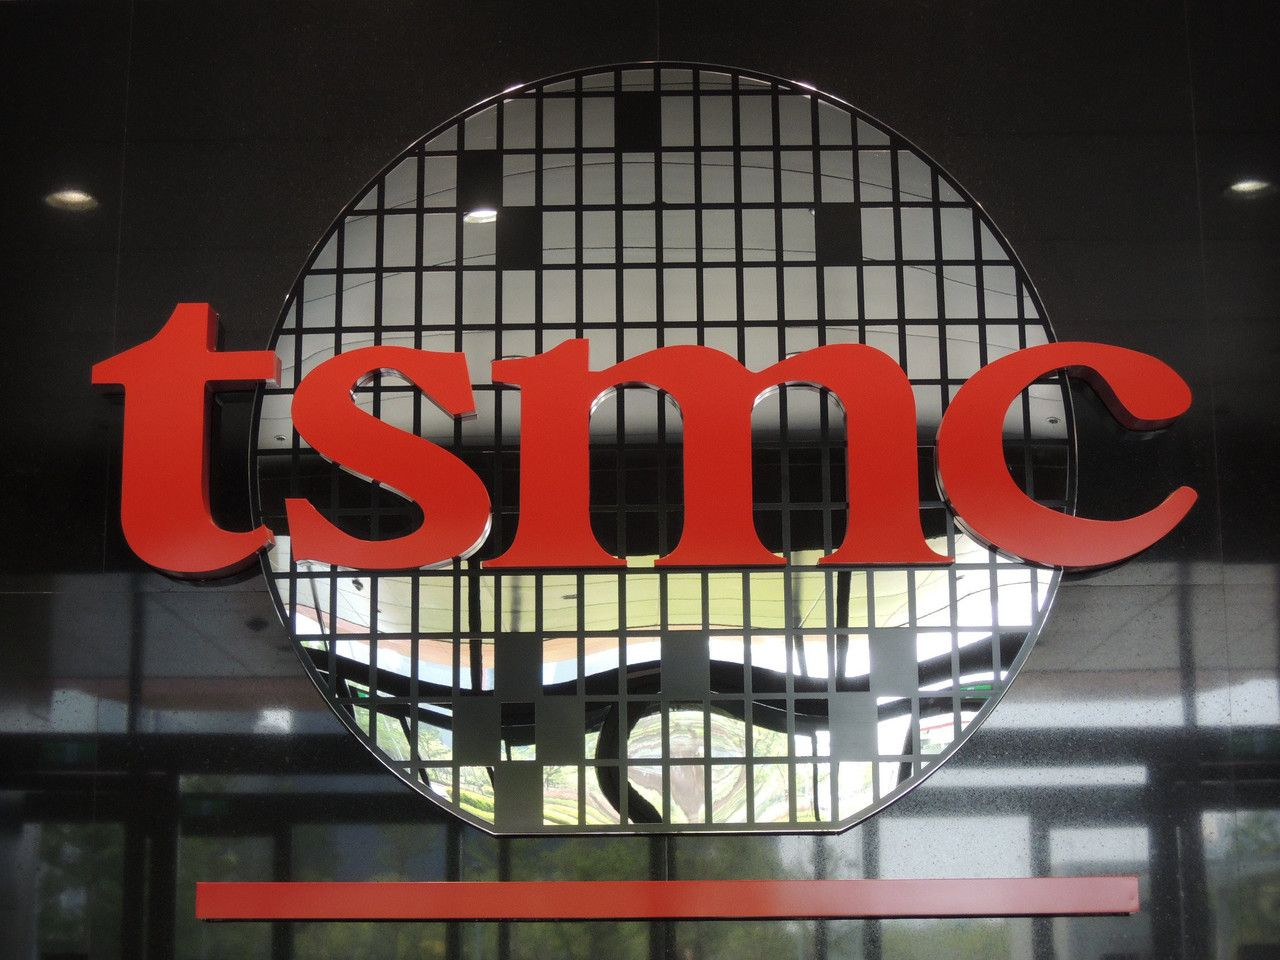 TSMC: 5nm transition is 87% superior to 7nm node in terms of transistor density